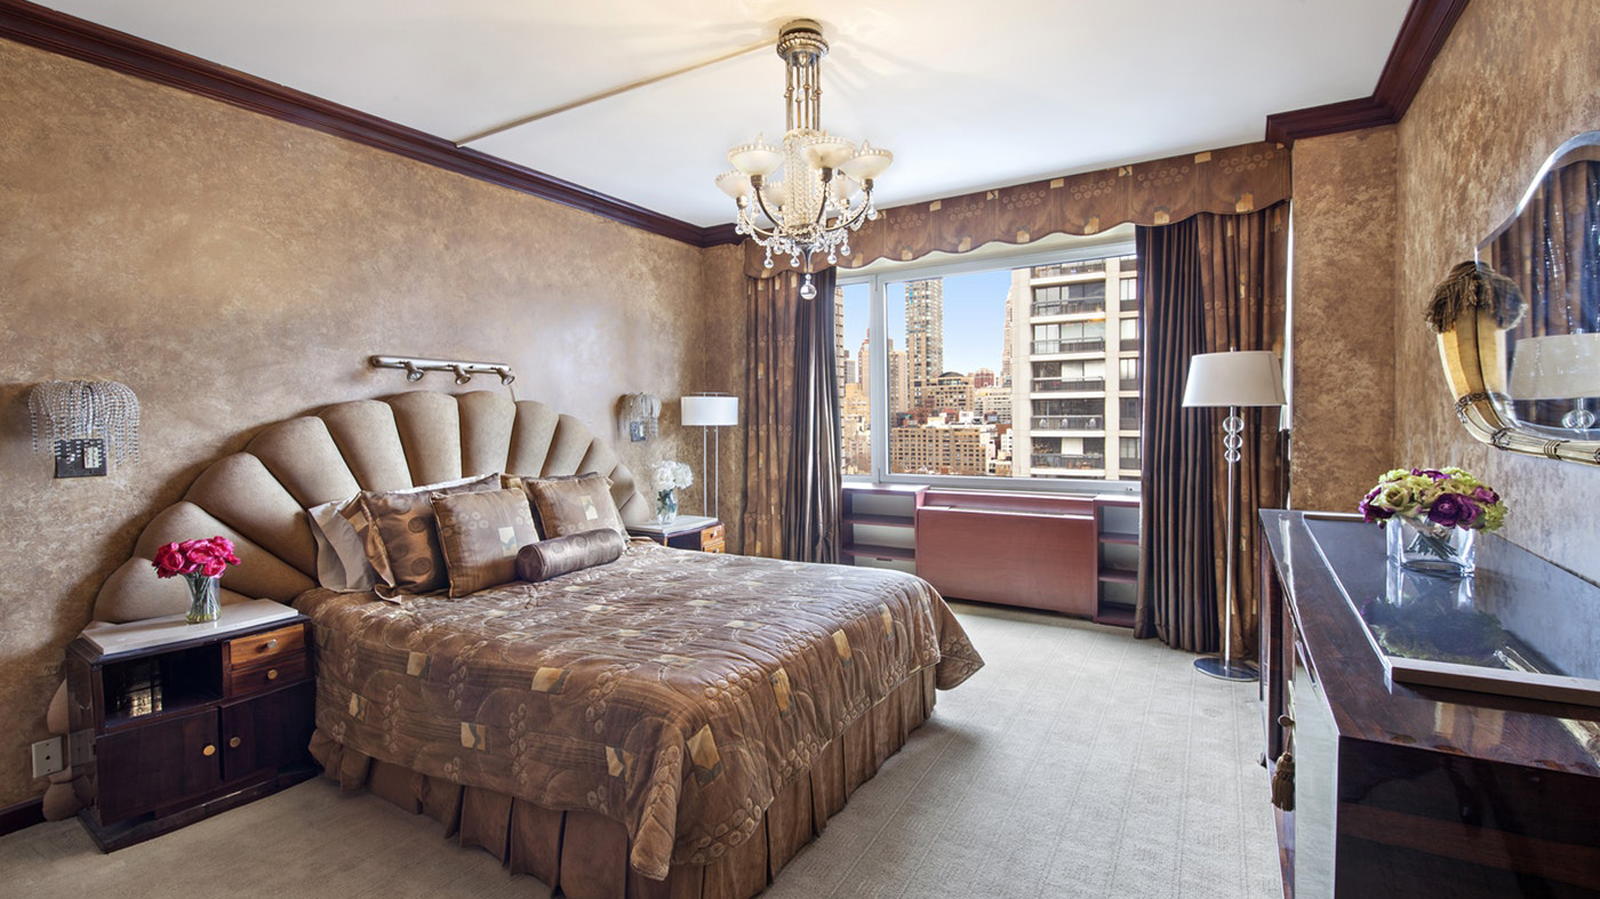 The Excelsior, 303 East 57th Street